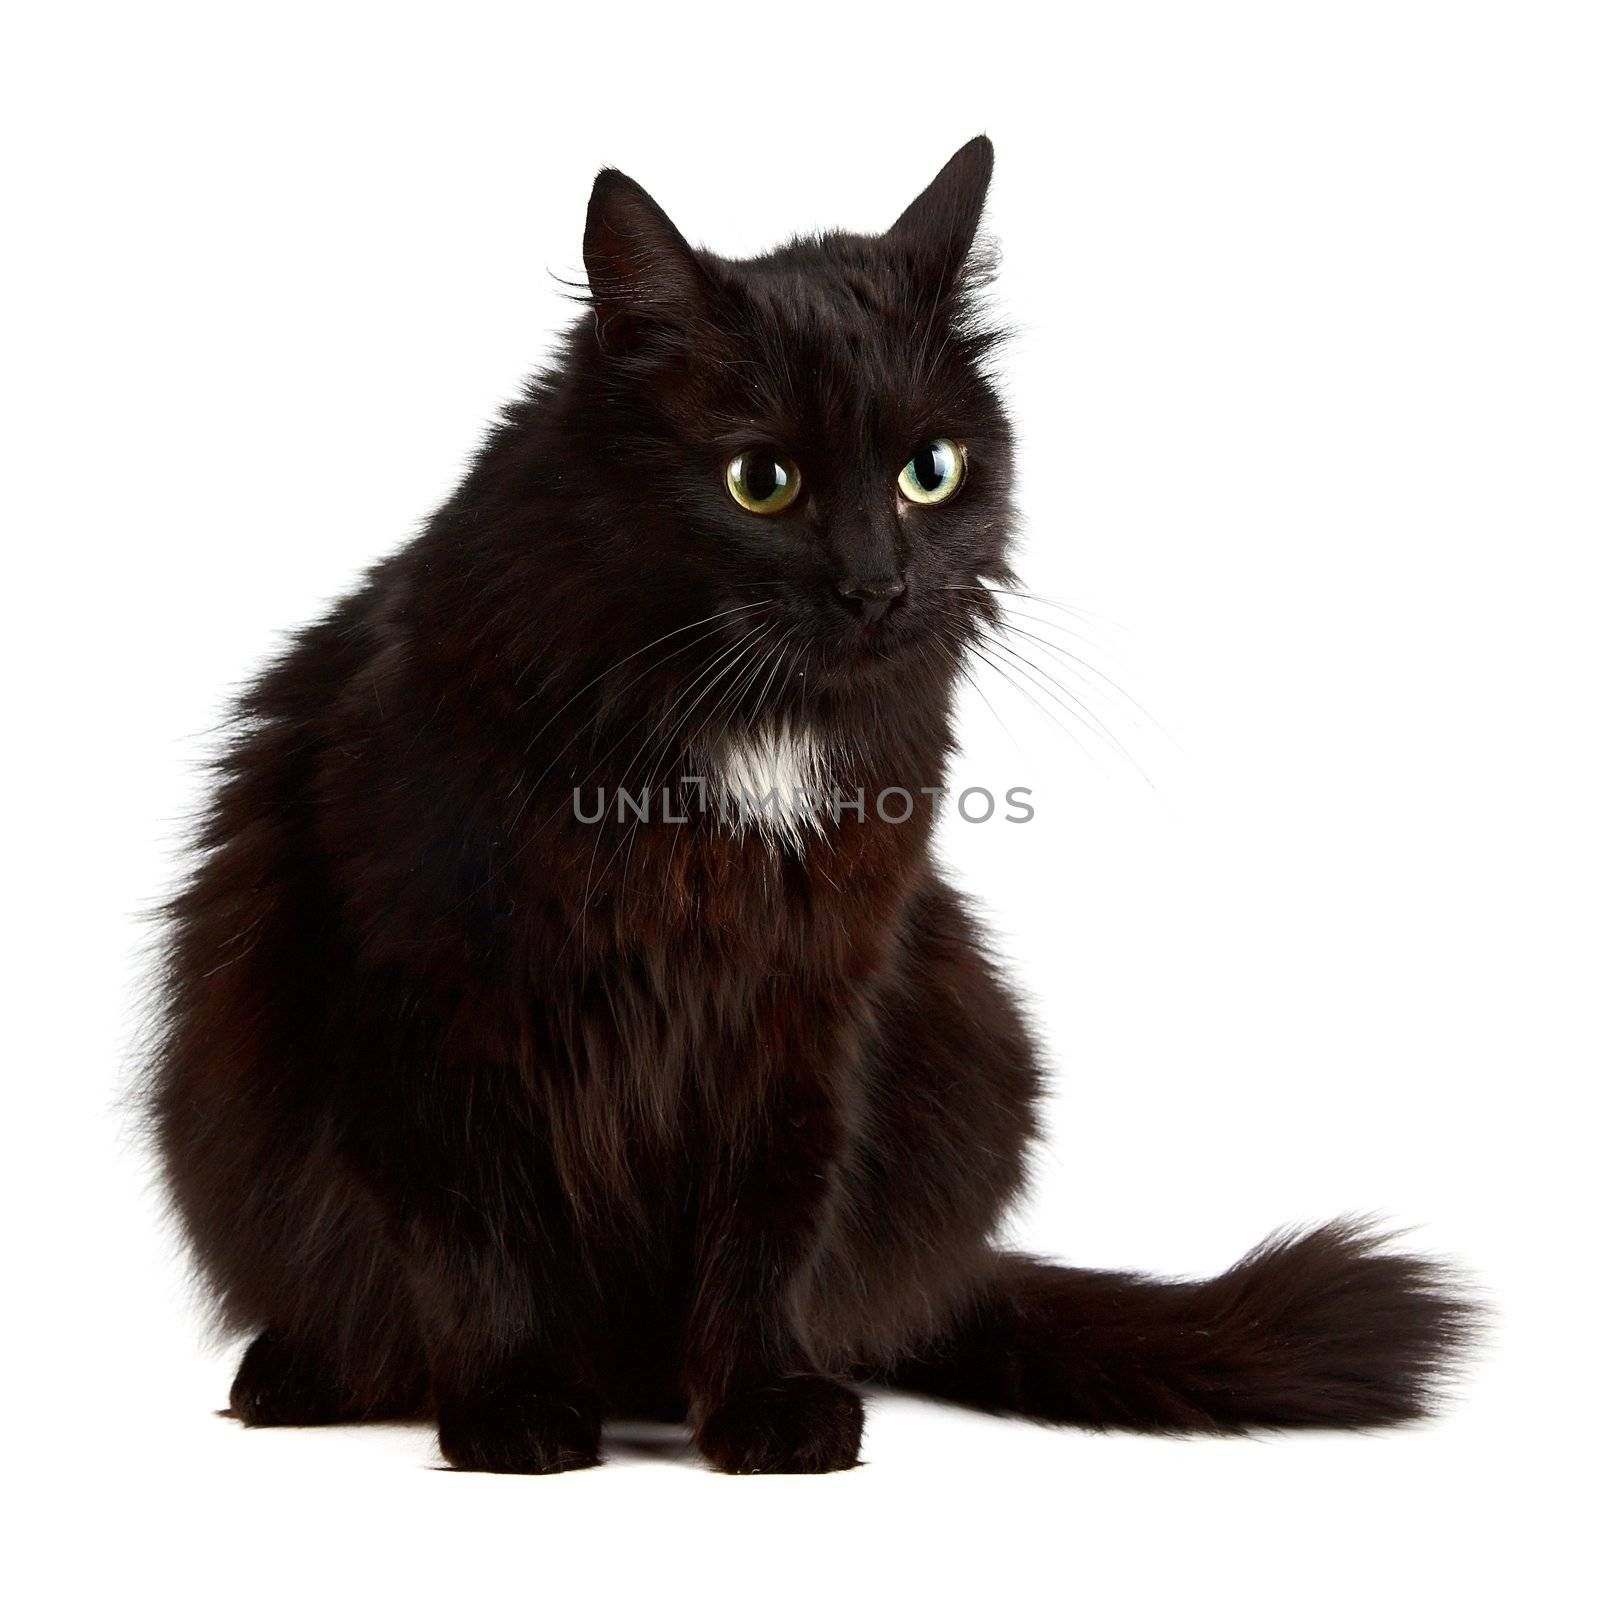 The black cat sits on a white background